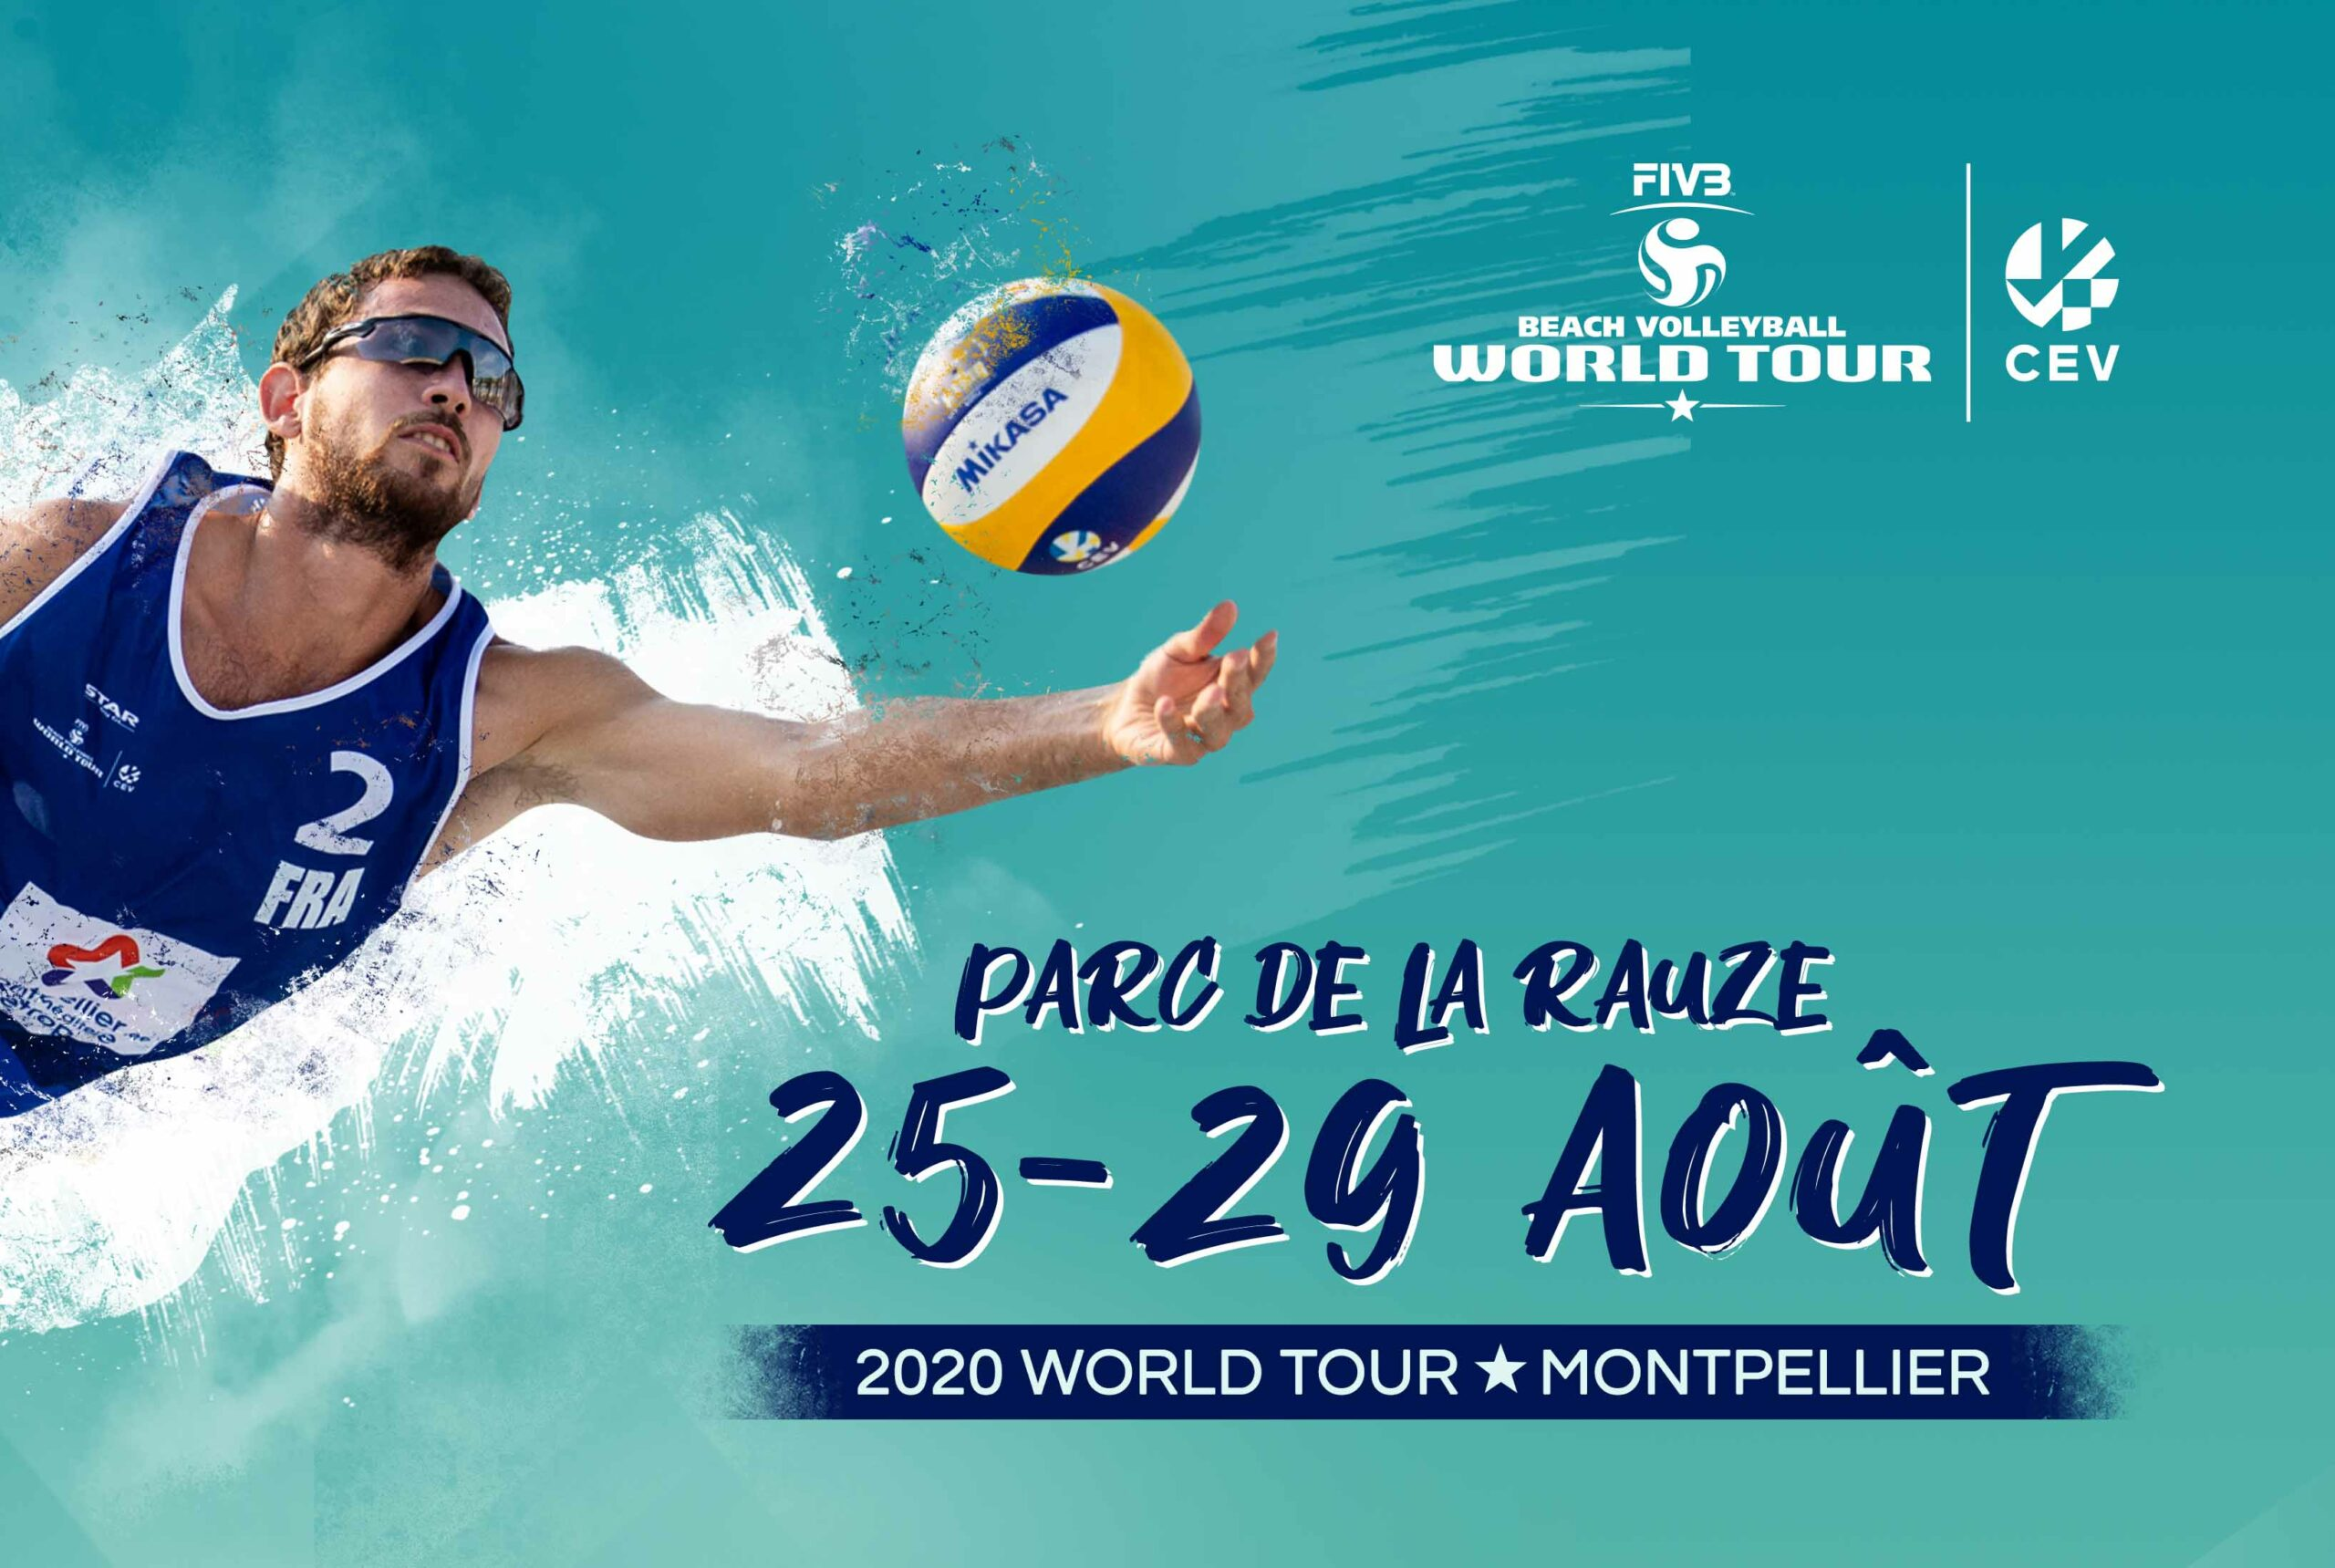 World Tour 2020, ce que l'on sait !